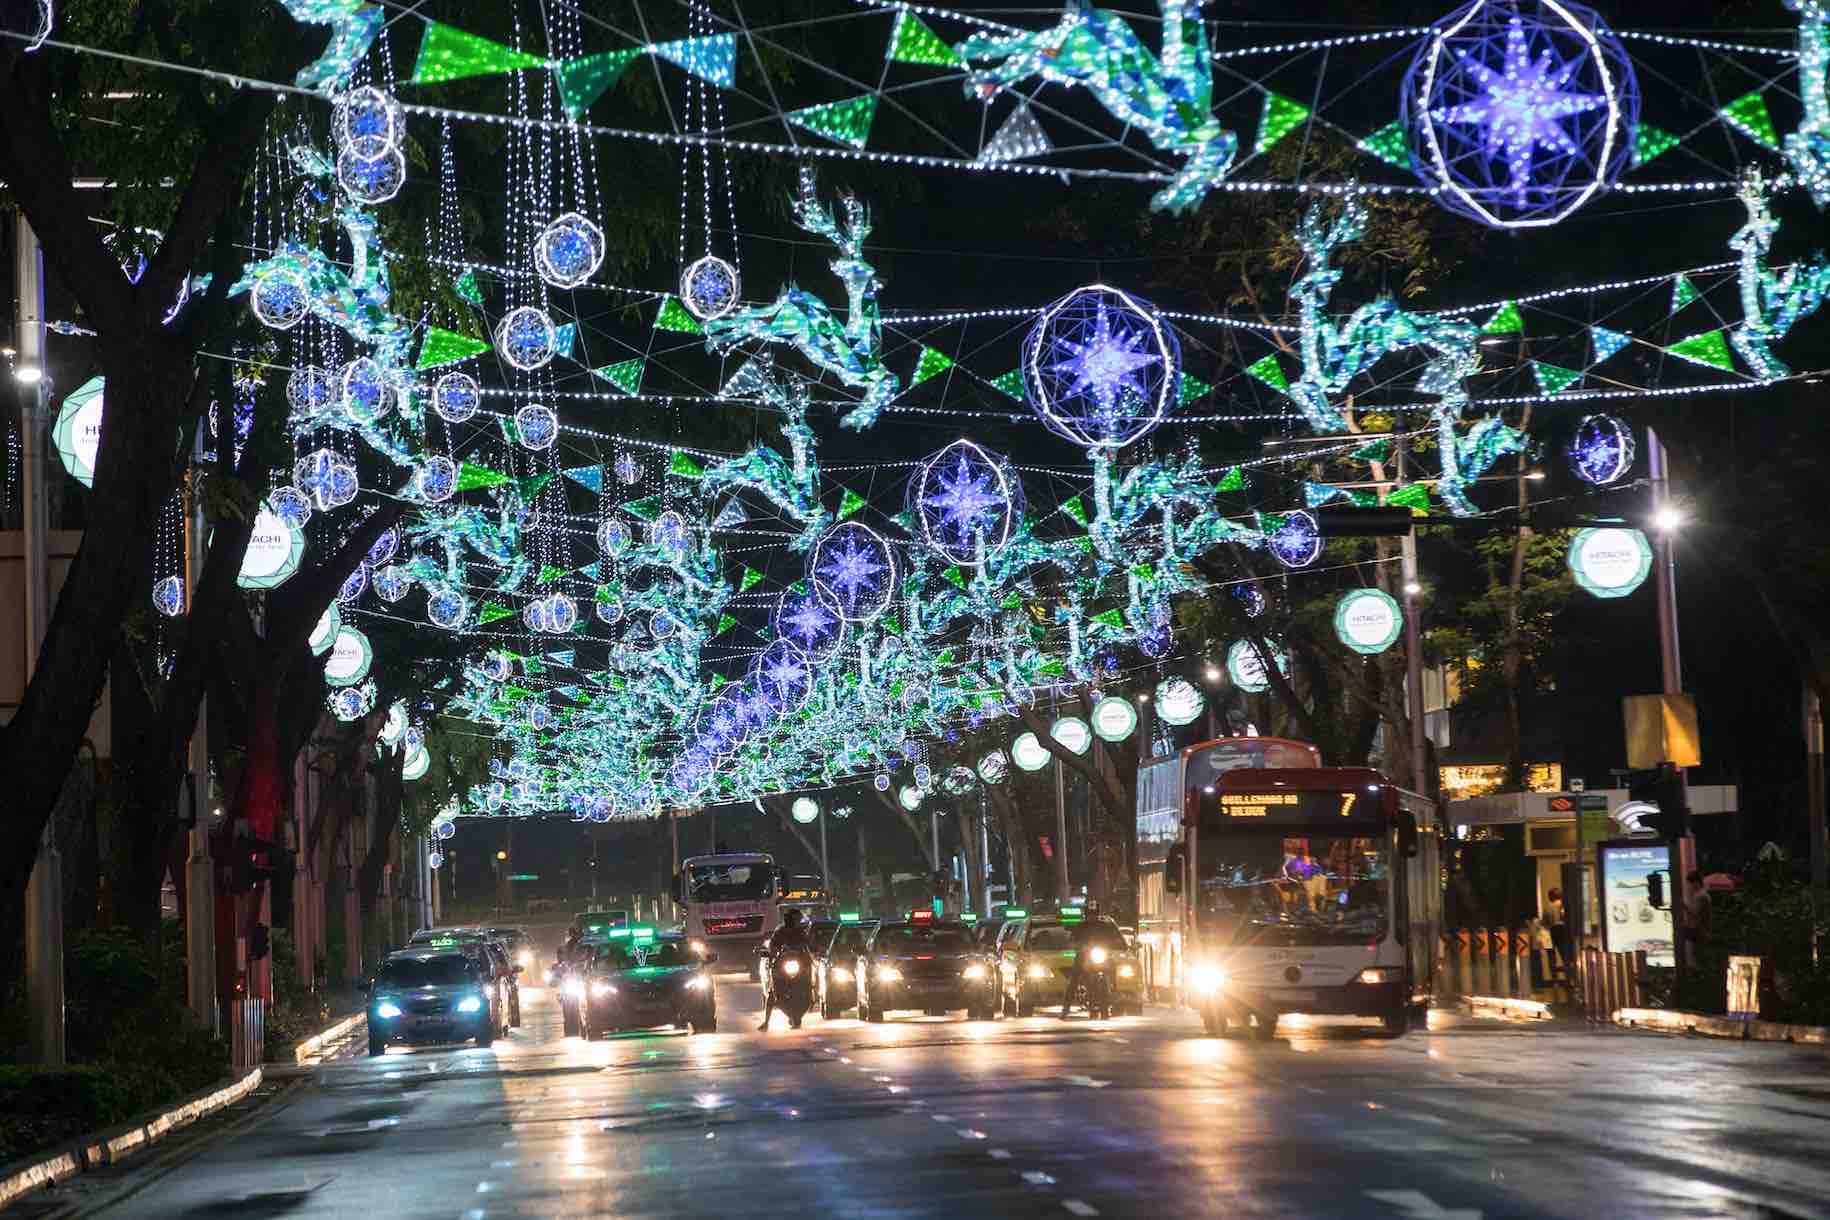 Orchard Road Festive Light Up Christmas On A Great Street 2016